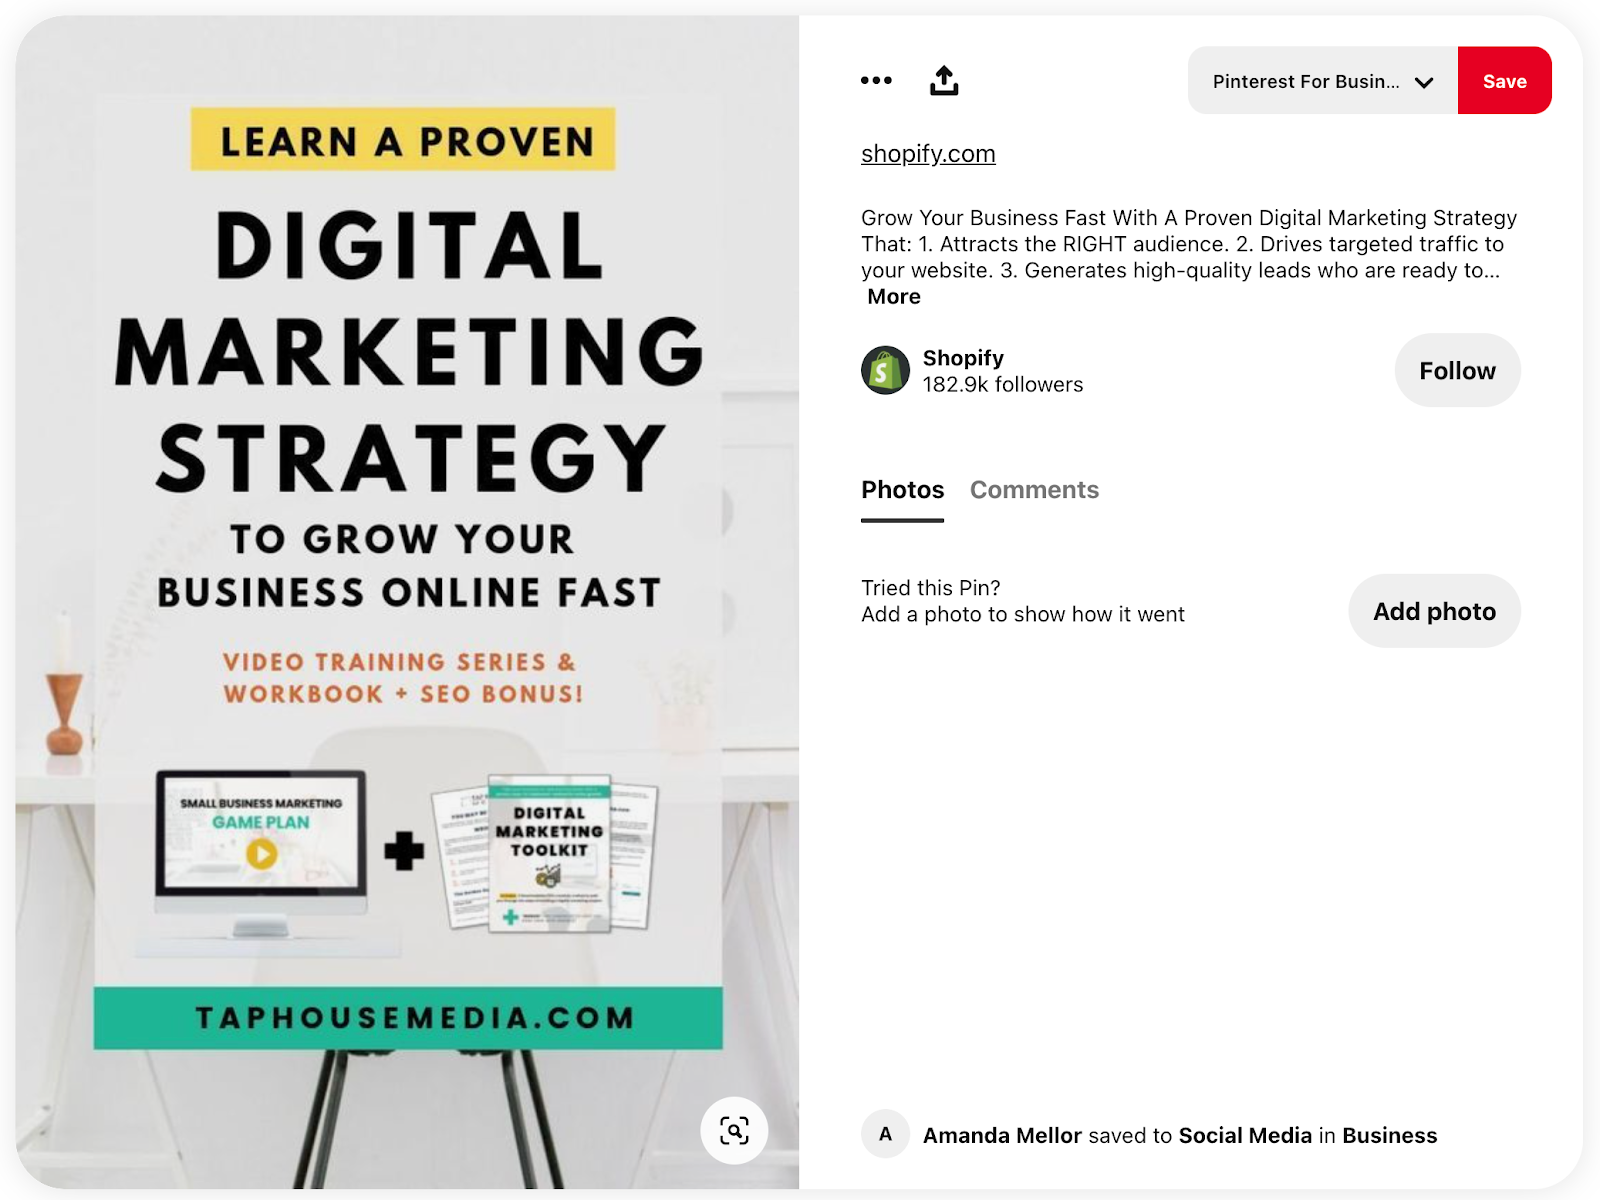 How to Drive More Traffic to Your Website From Pinterest